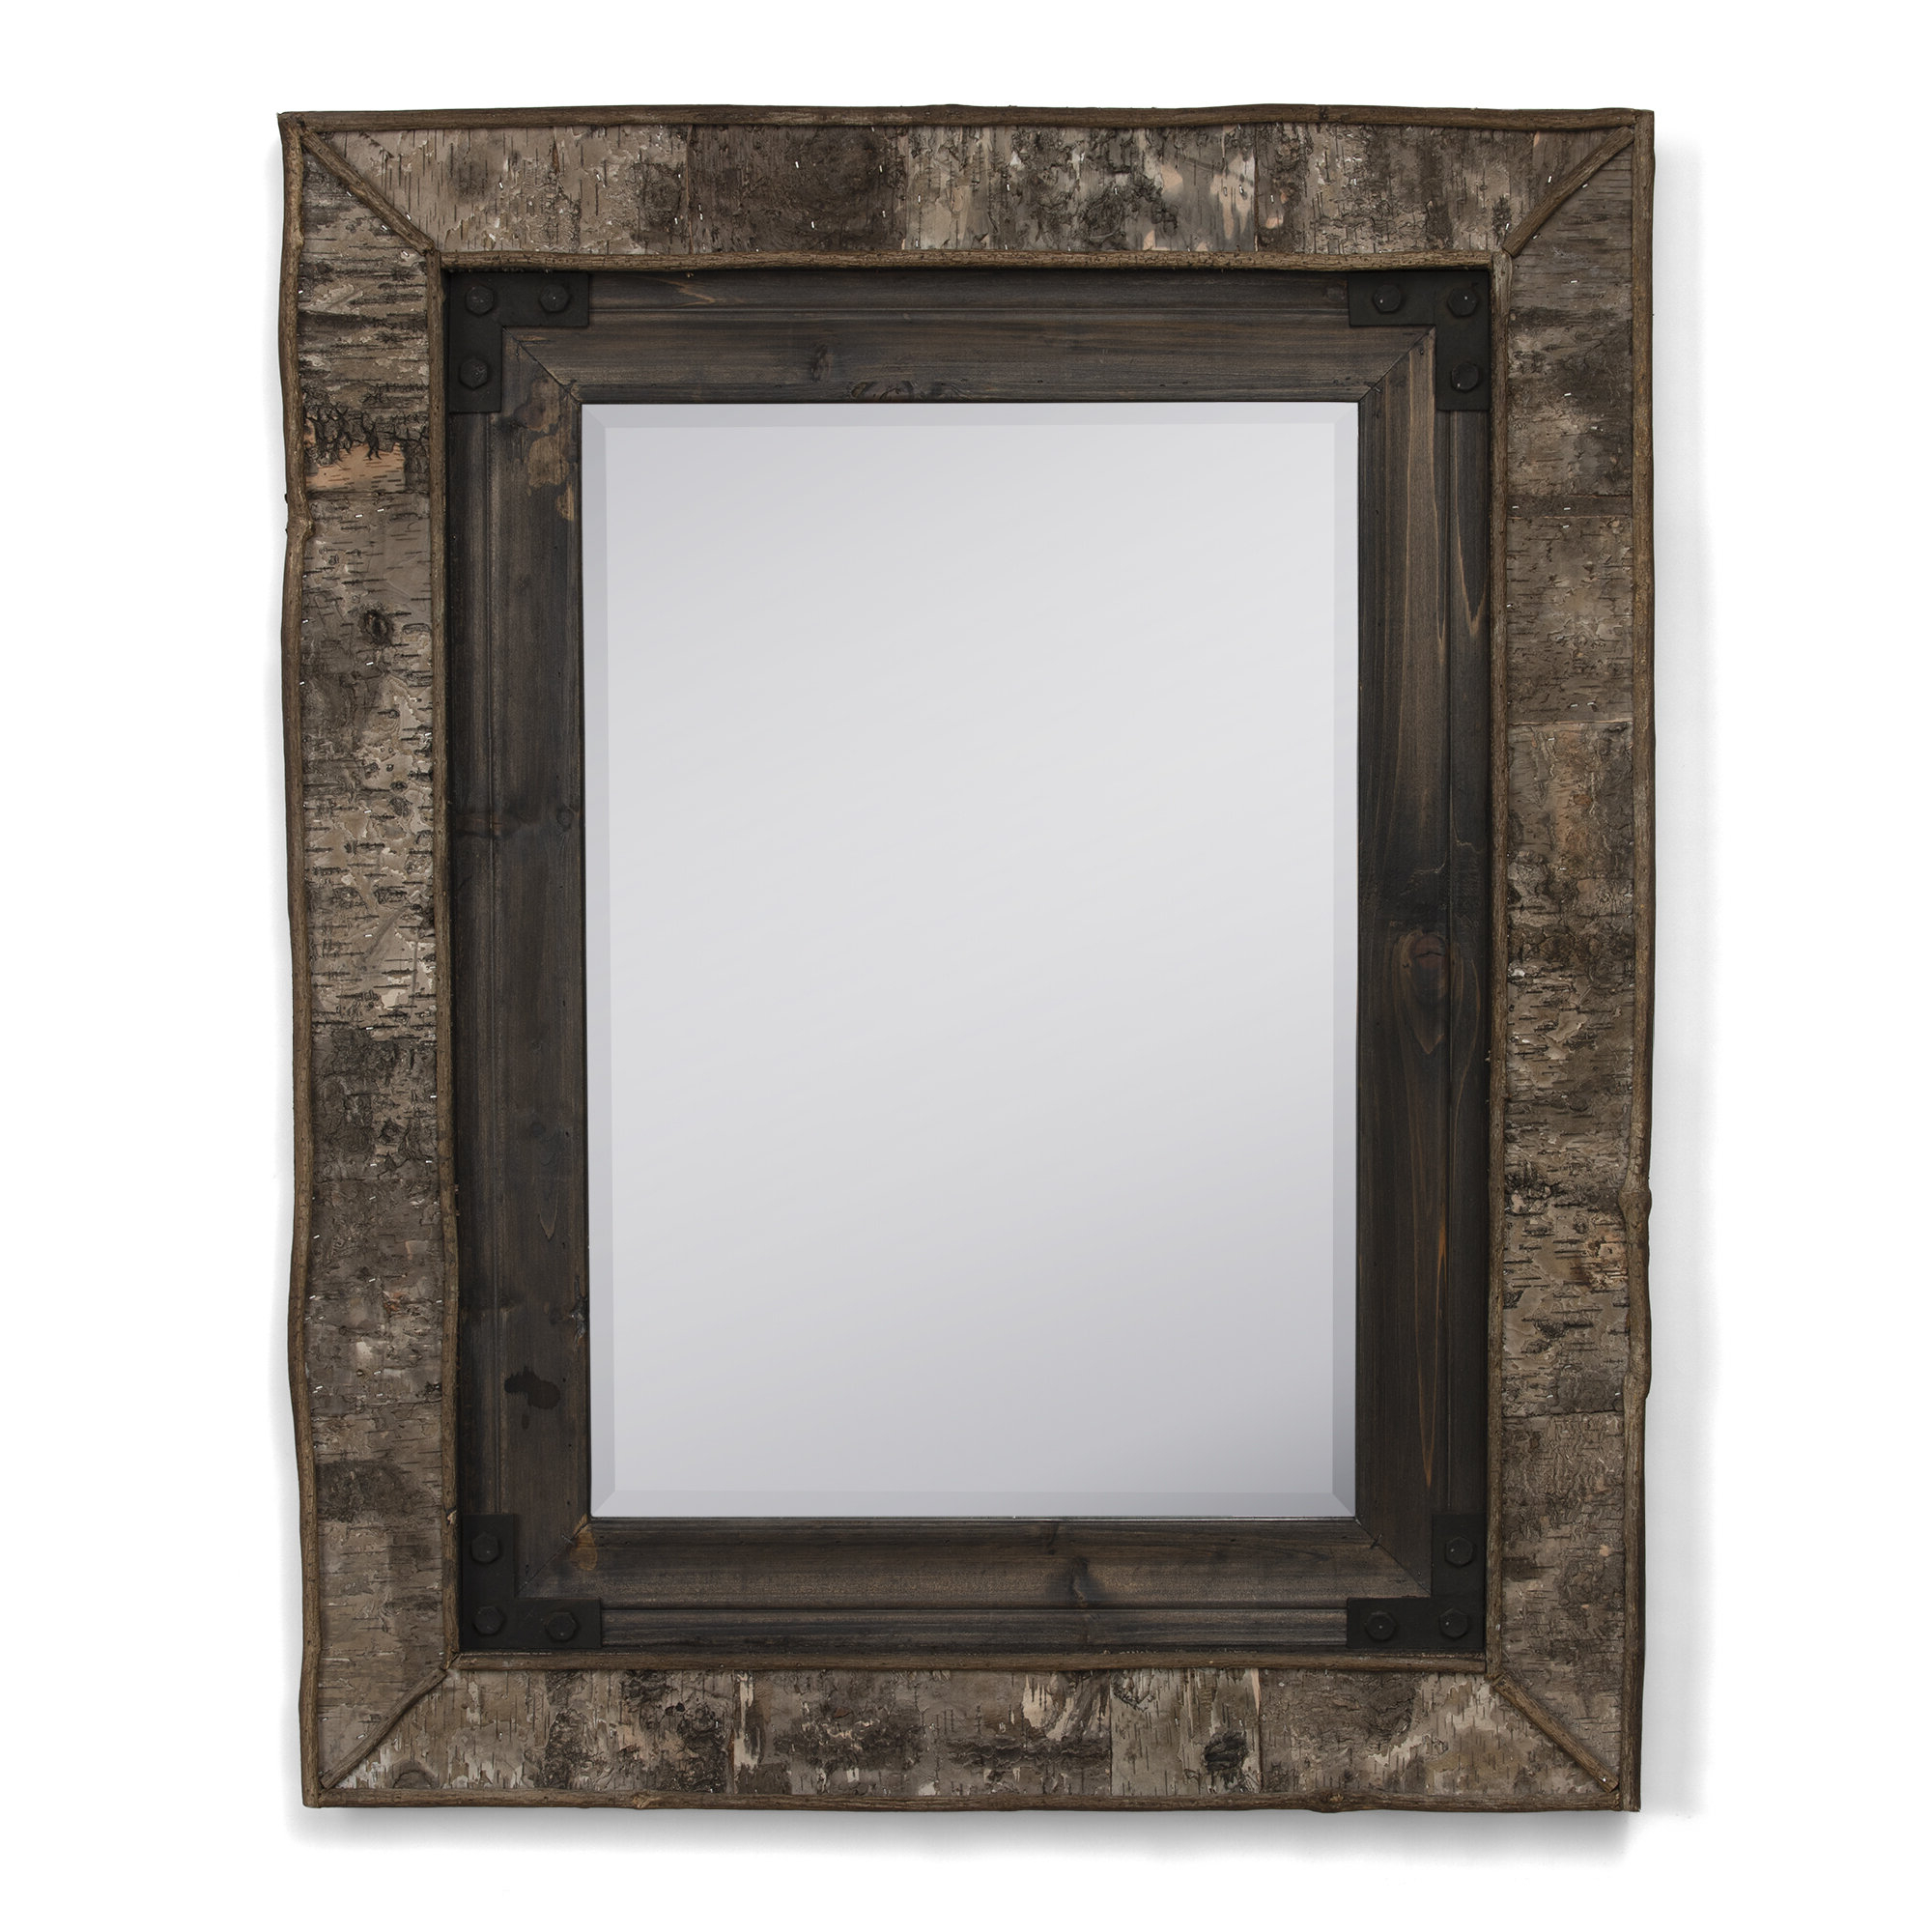 Best And Newest Rectangle Accent Wall Mirrors In Details About Loon Peak Rectangular Accent Wall Mirror (View 15 of 20)